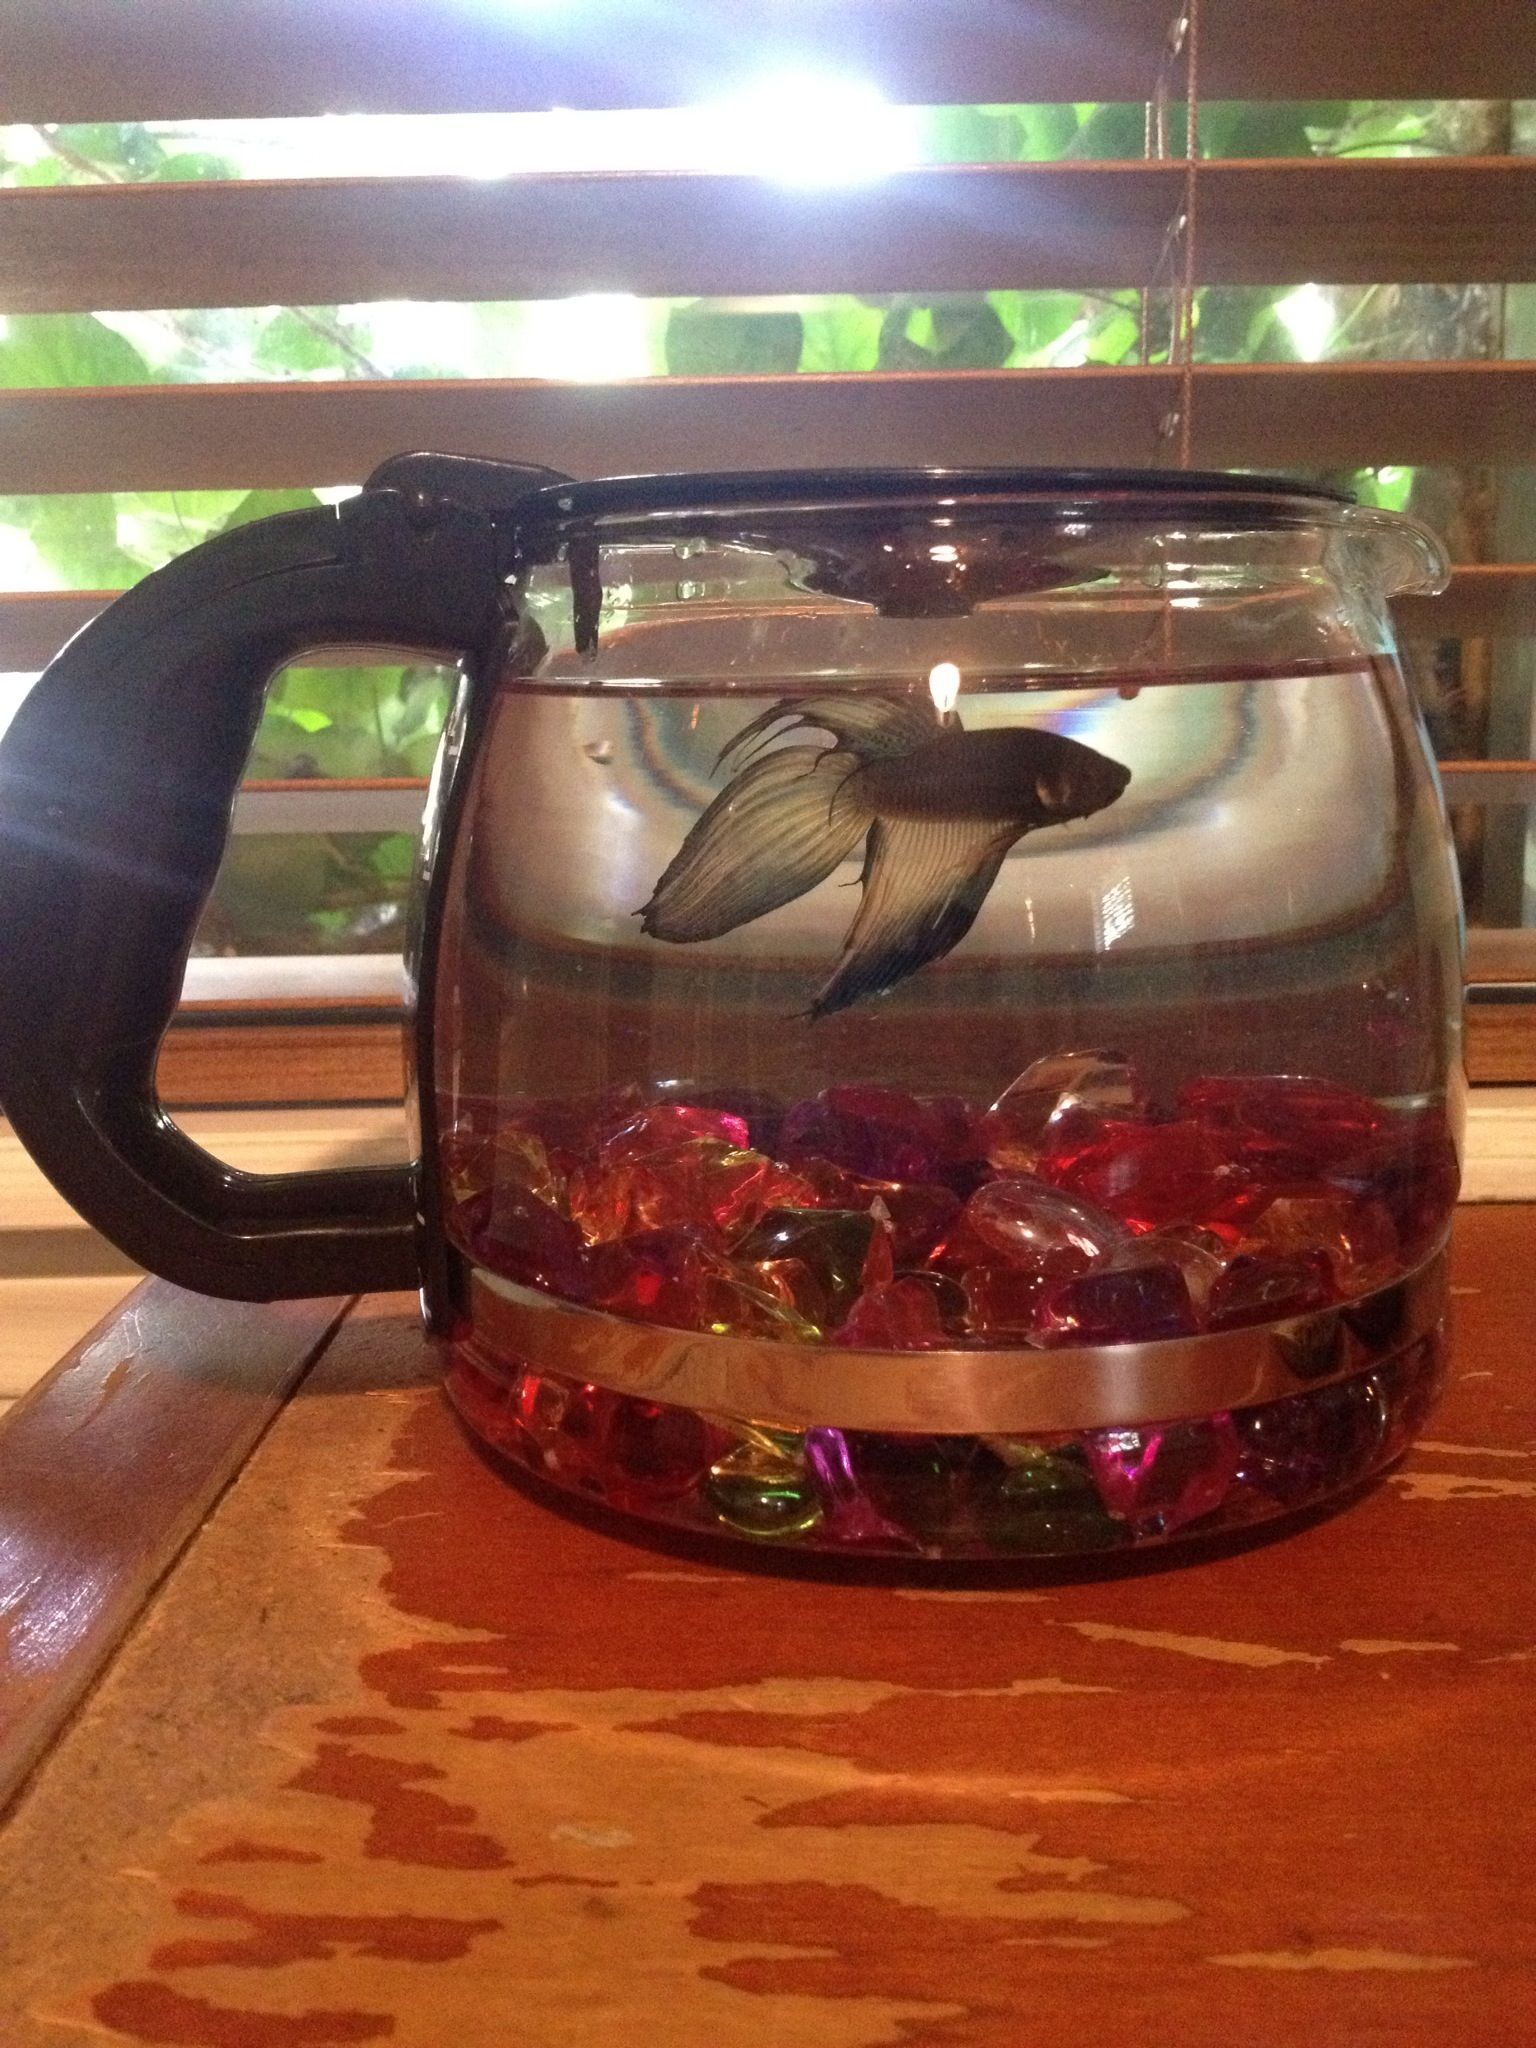 All glass aquarium fish tank - Cool Fish Tank Idea Came Up With This One All By Myself Too The